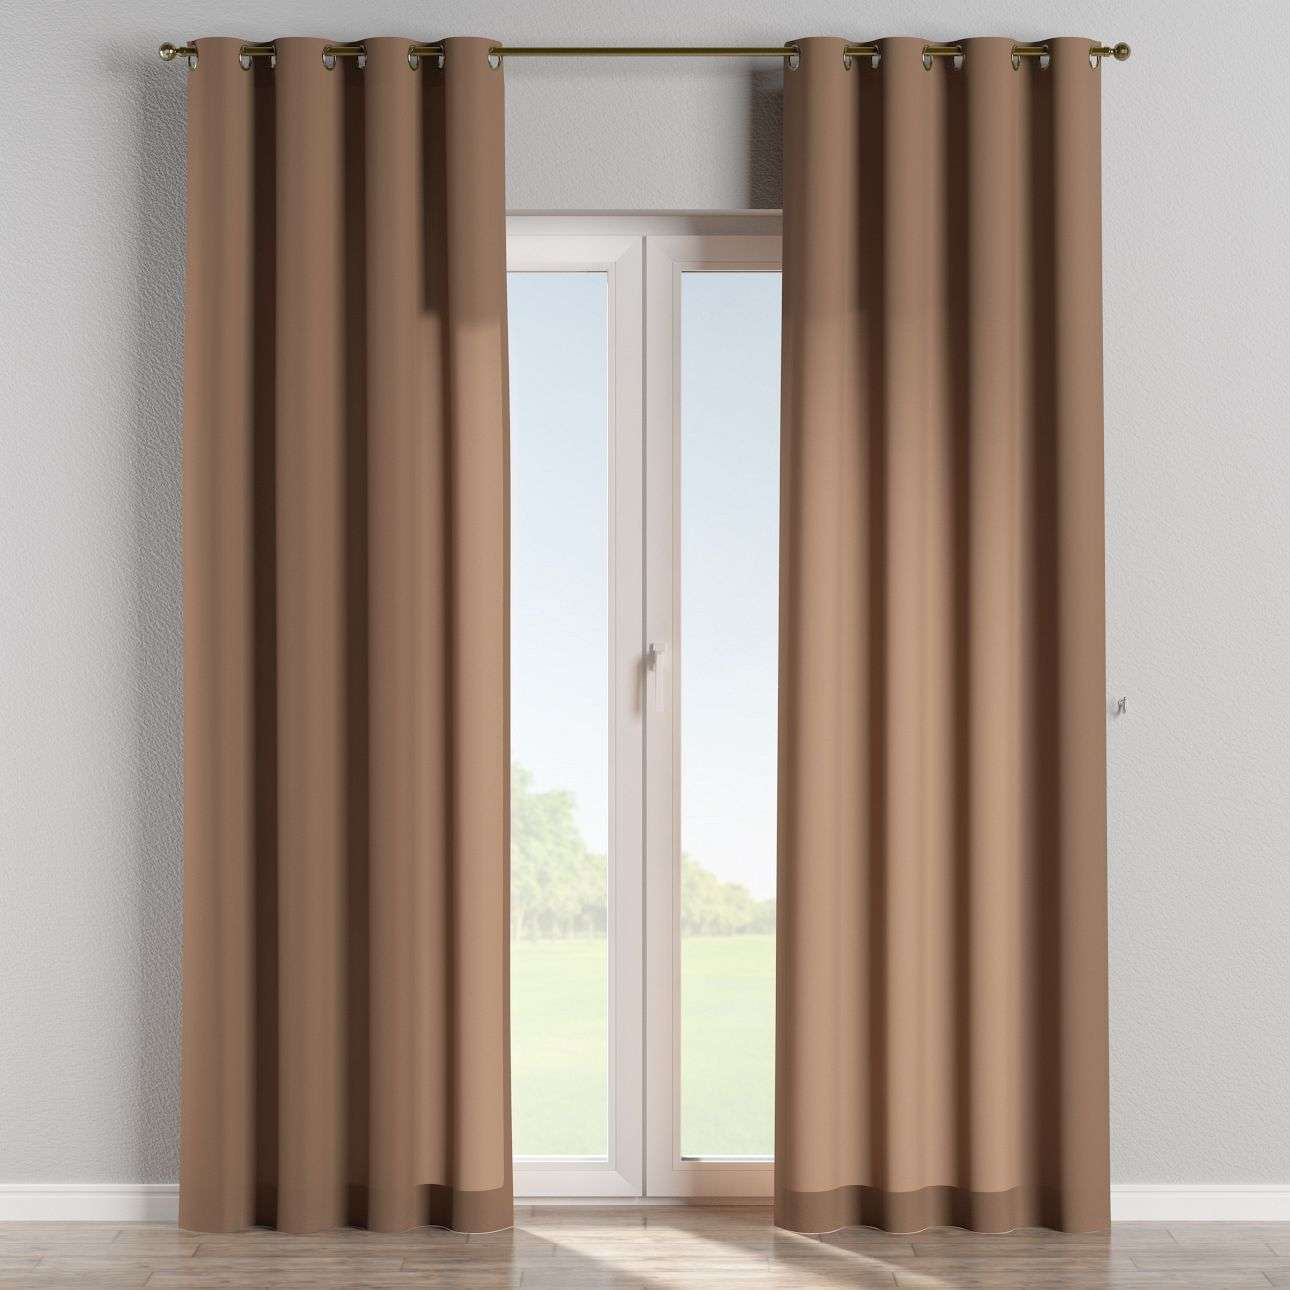 Eyelet curtains 130 x 260 cm (51 x 102 inch) in collection Comics/Geometrical, fabric: 139-15